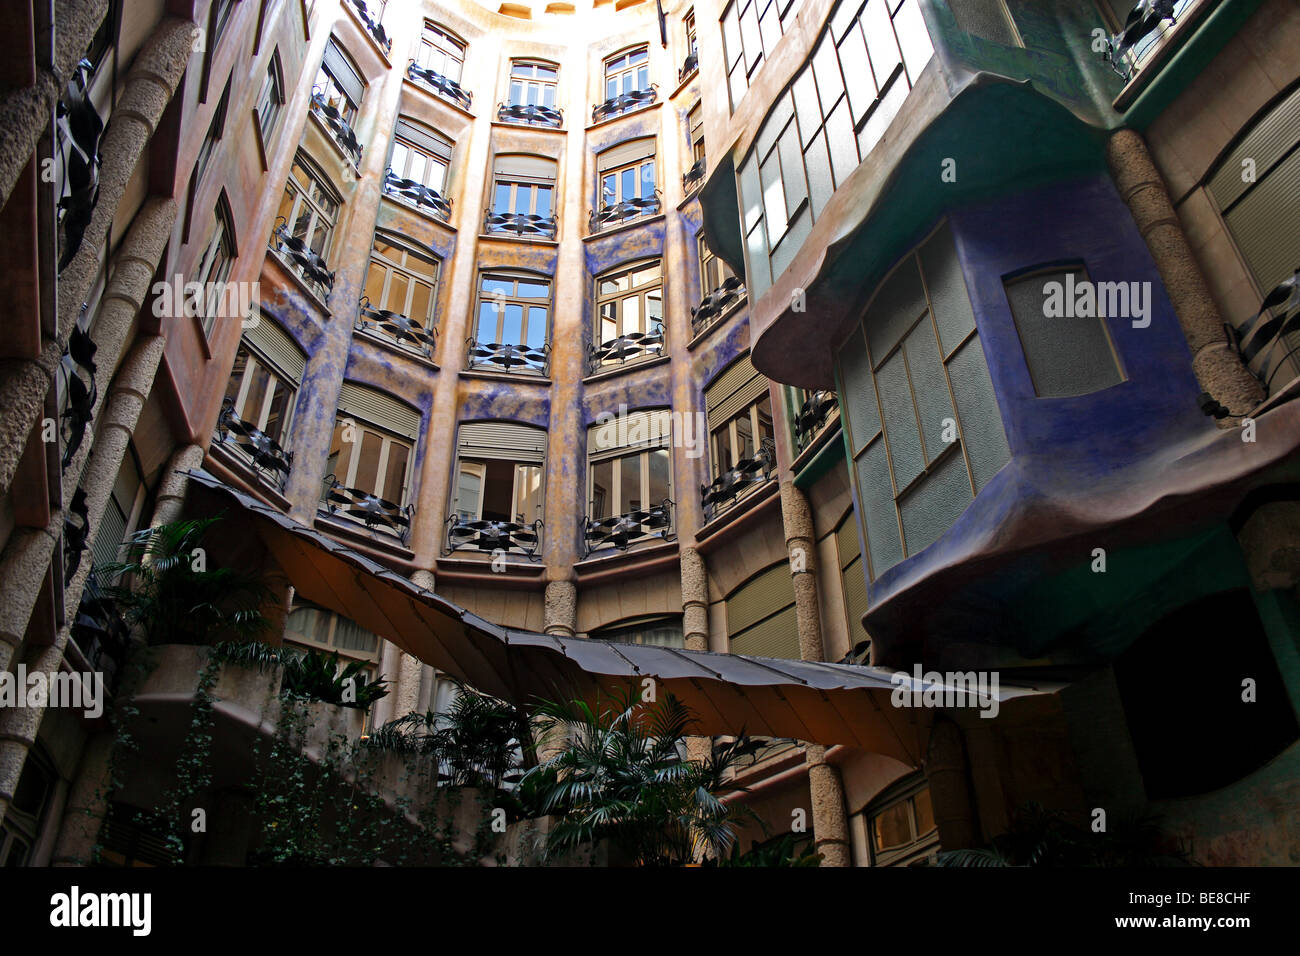 The courtyard of the Casa Mila, designed by the Spanish ...